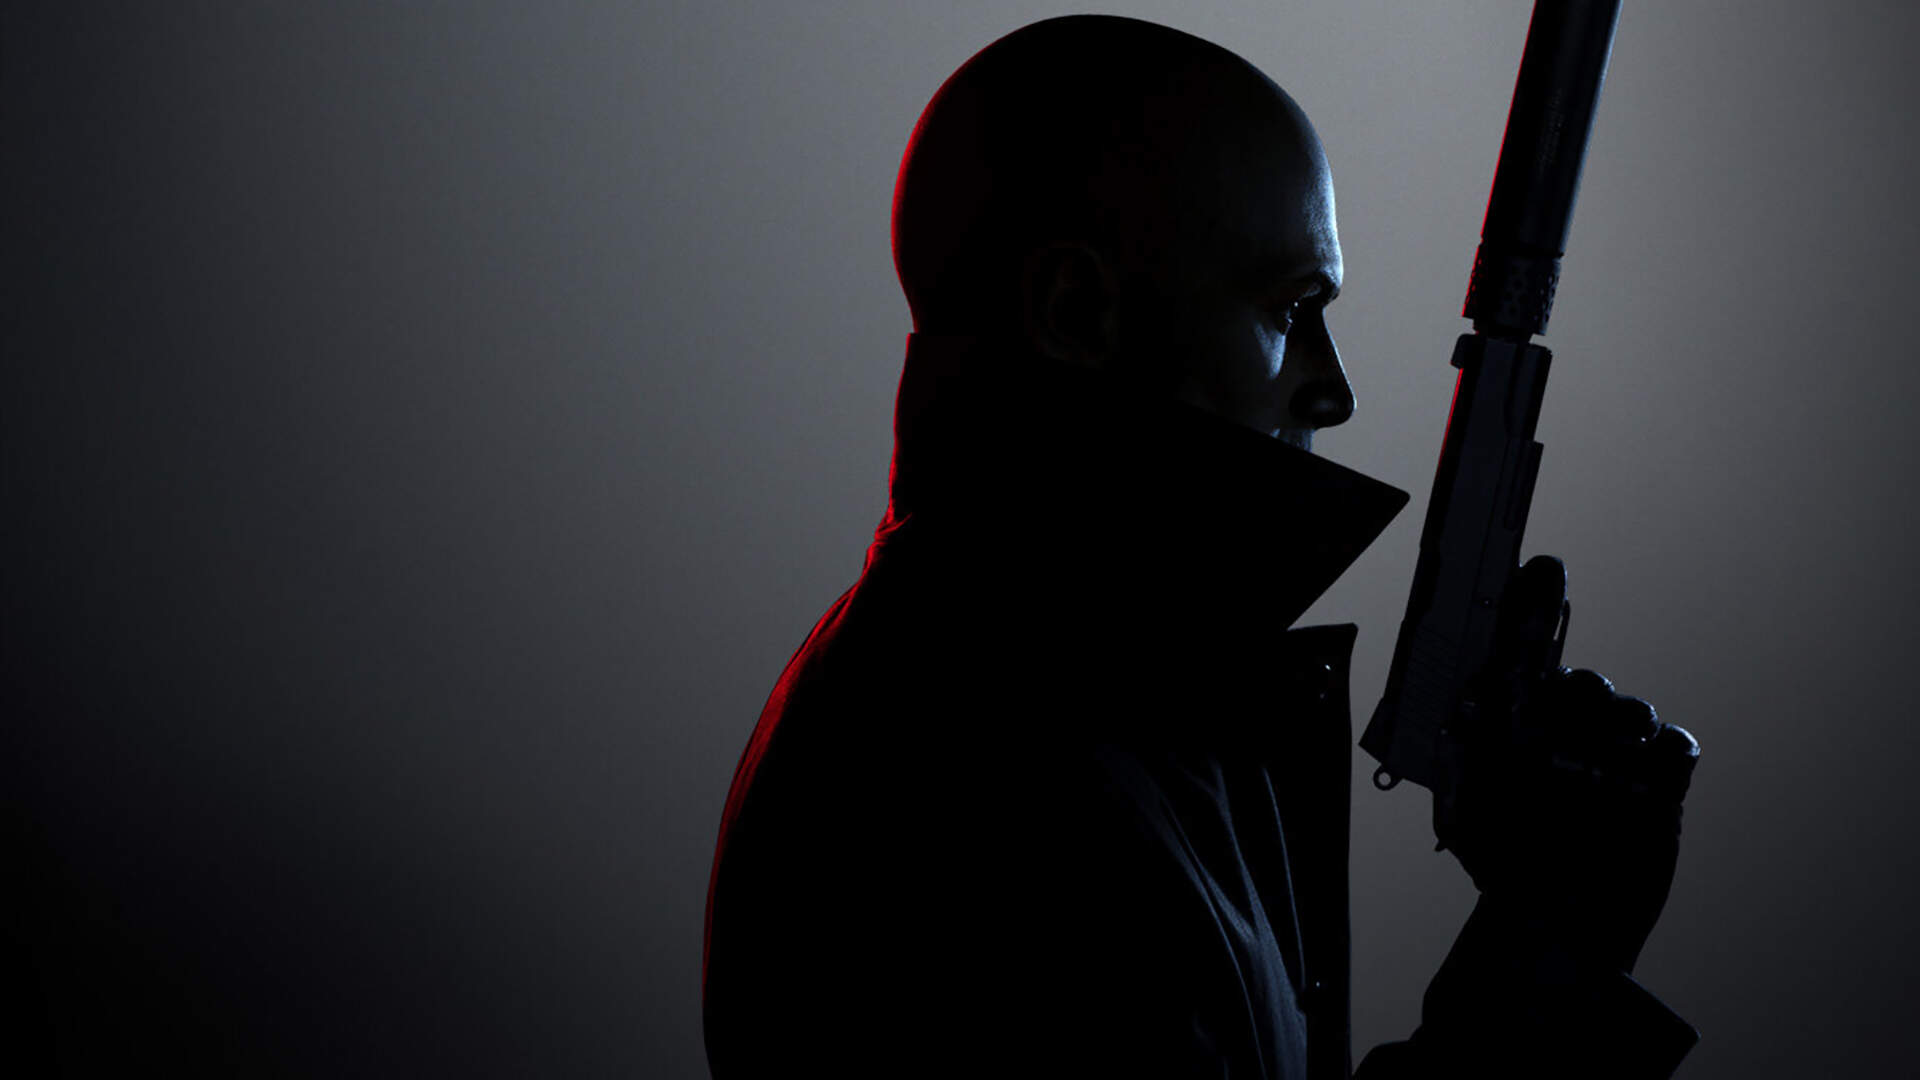 Hitman 3 Sets Release Date and Guarantees Free Next-Gen Upgrades